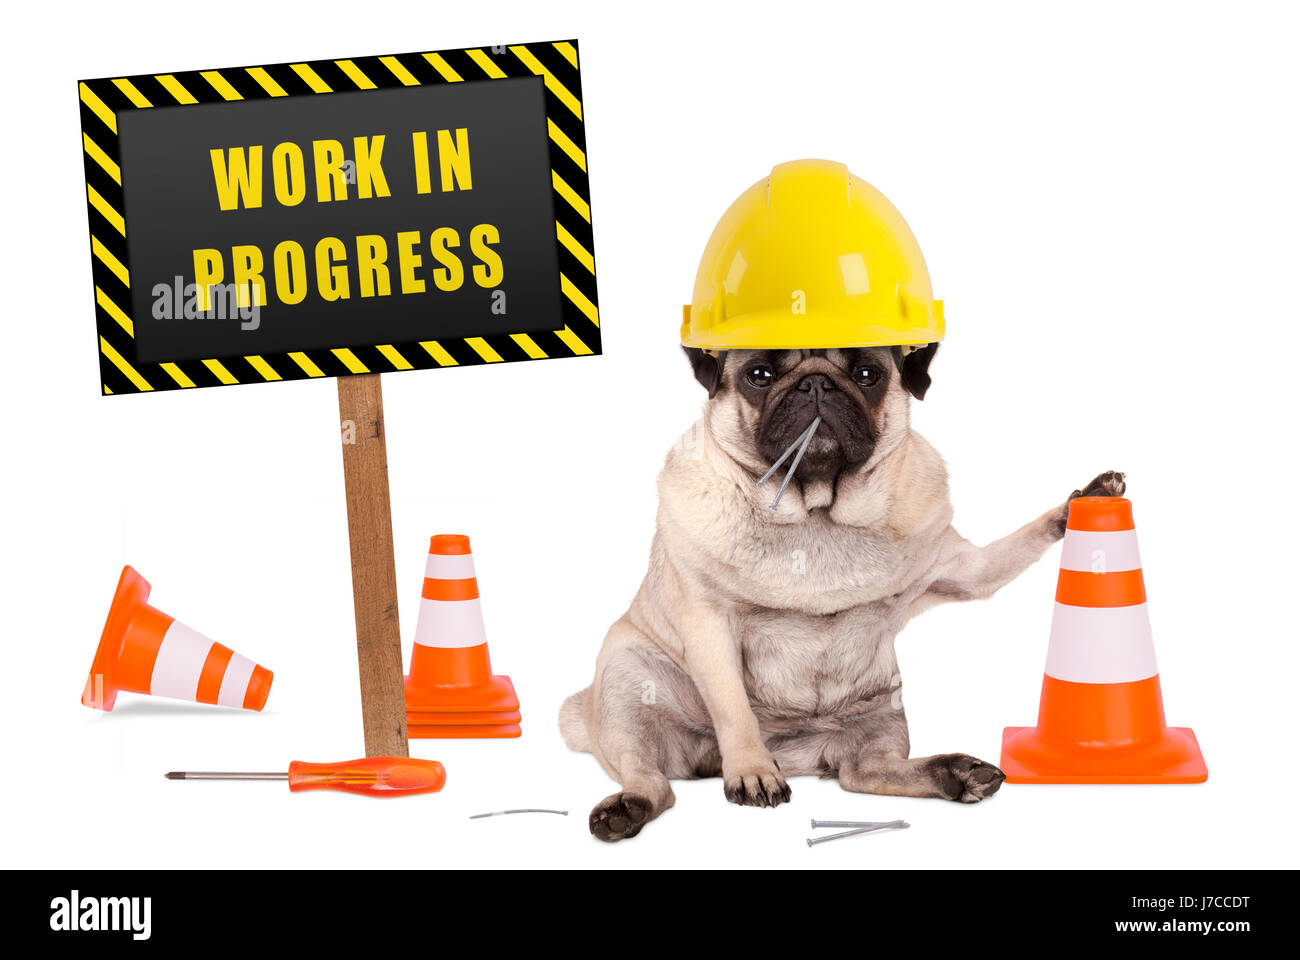 pug dog with constructor safety helmet and yellow and black work in progress sign on wooden pole, isolated on white Stock Photo